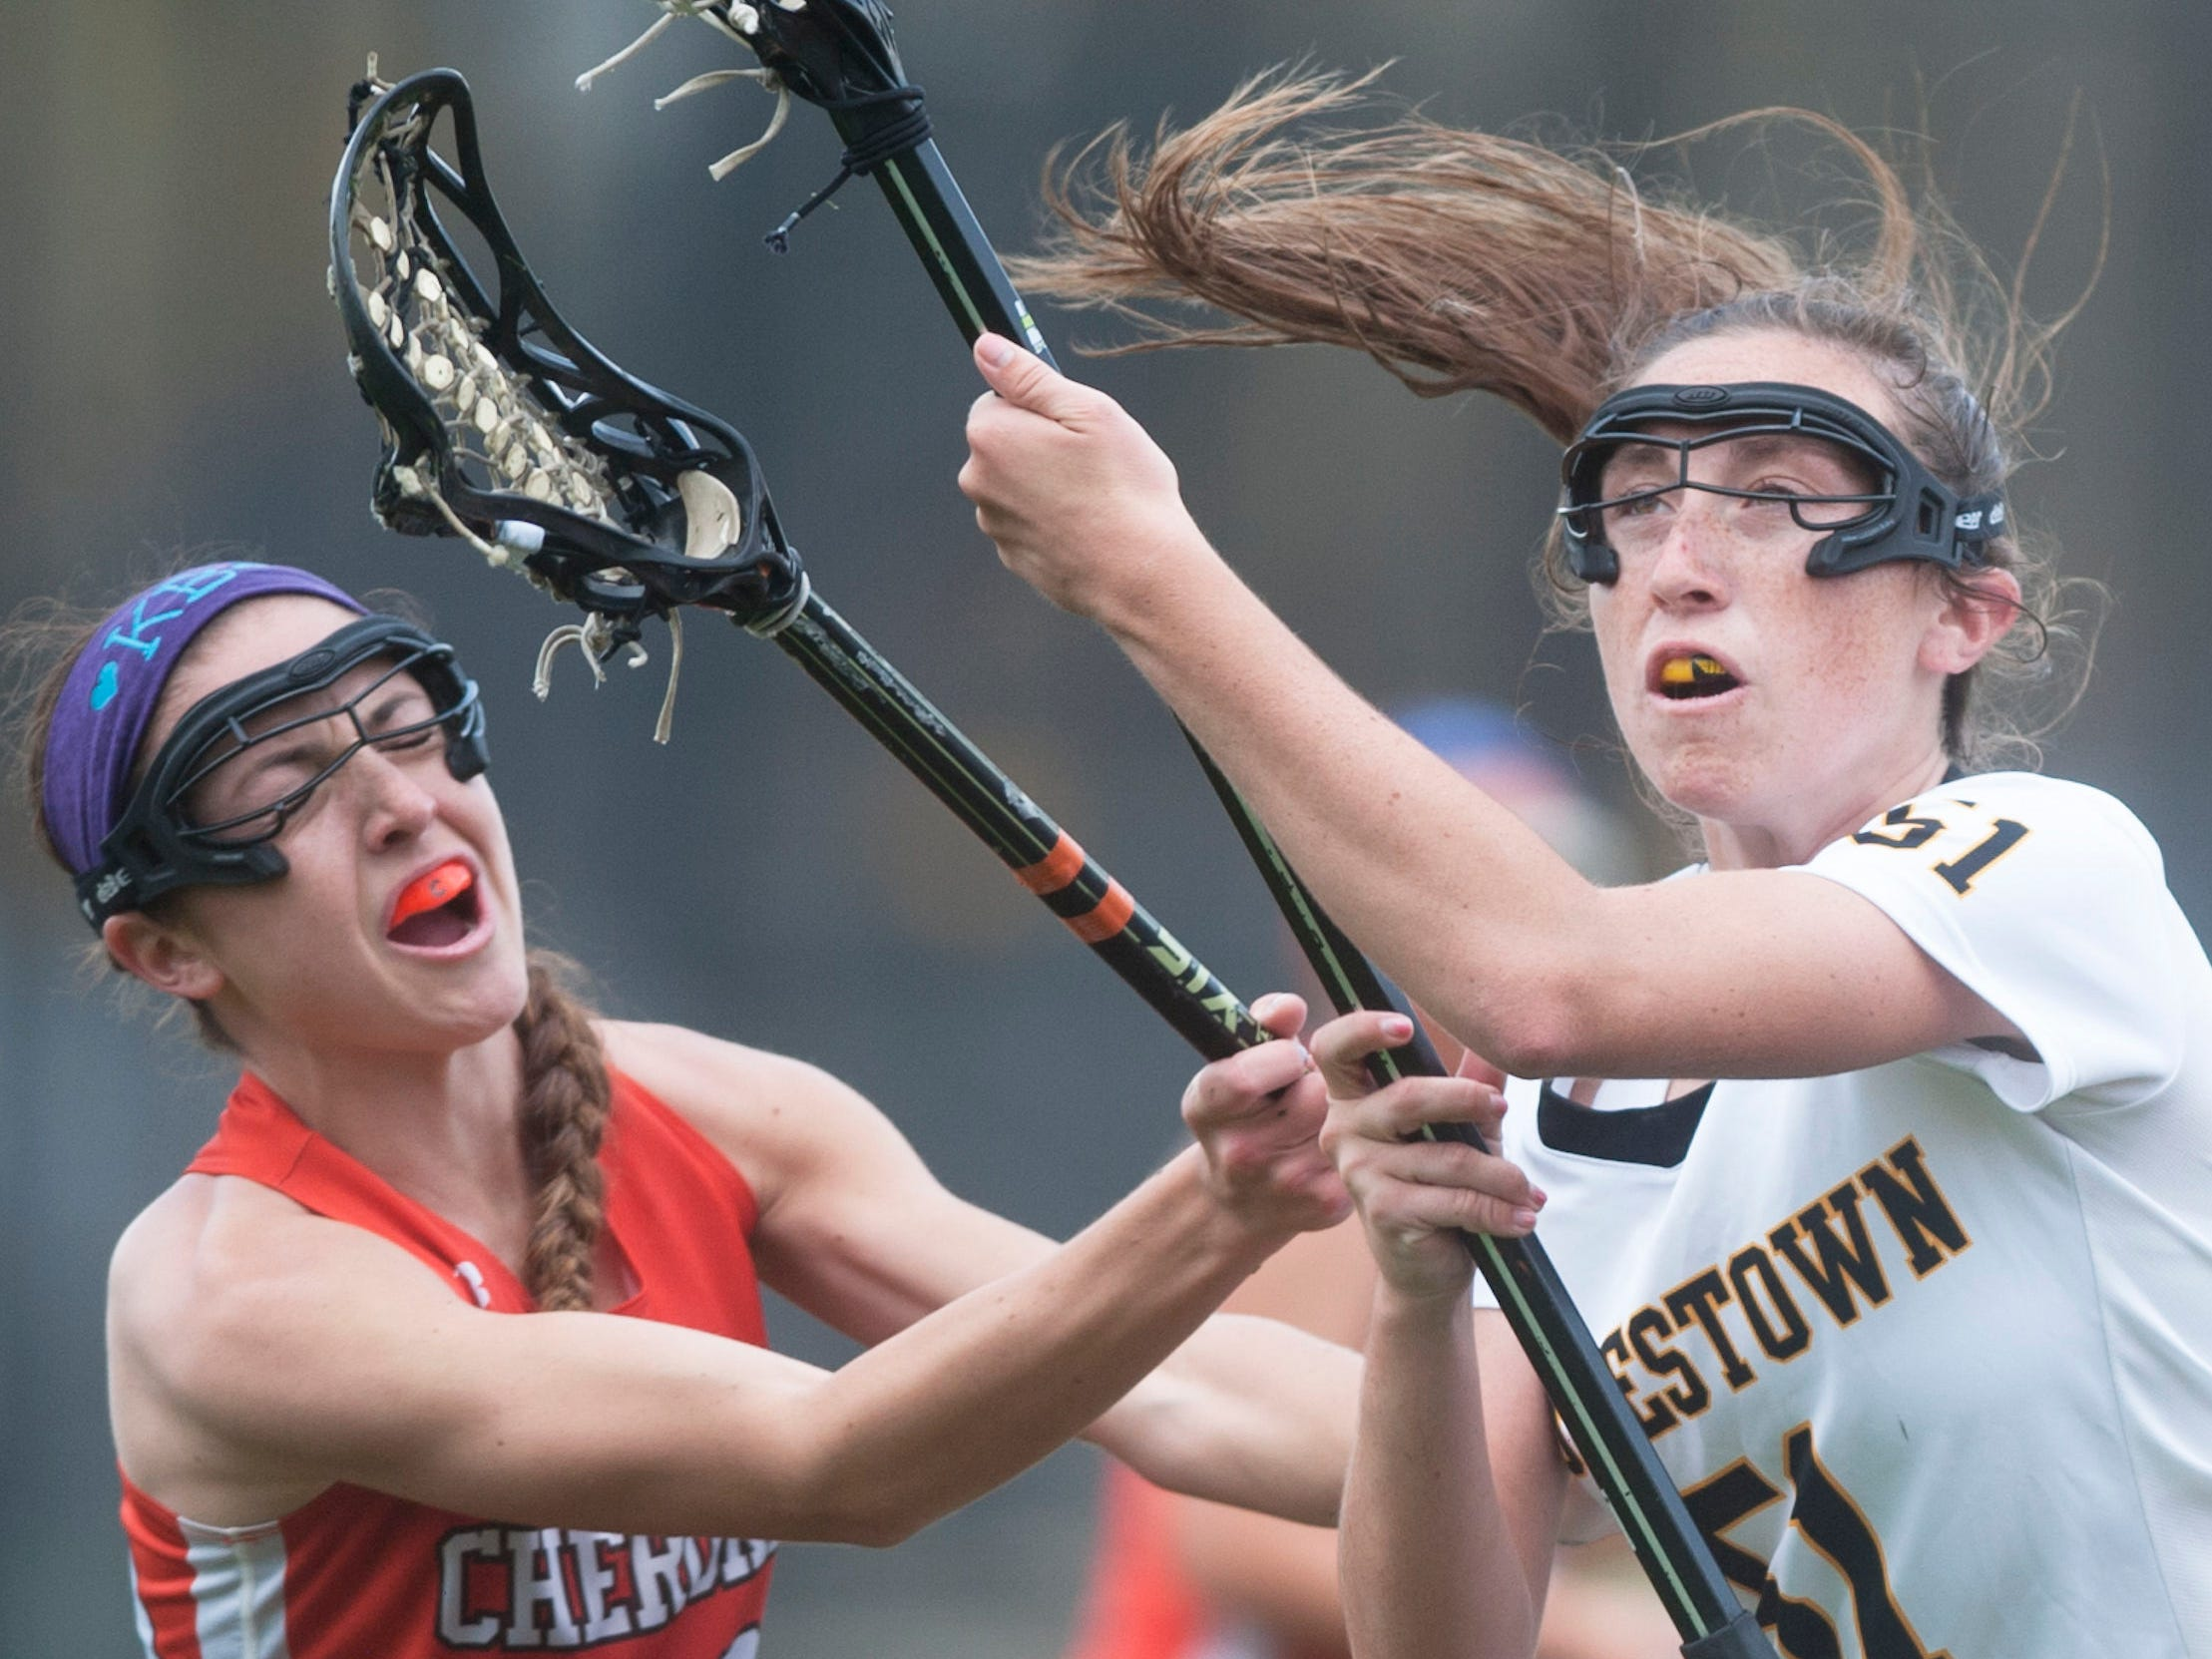 Moorestown's Melanie Becker, right, controls the ball next to Cherokee's Savannah Singer as Becker drives to the goal prior to scoring a goal during the 1st half of Wednesdays game played in Moorestown. 04.22.15